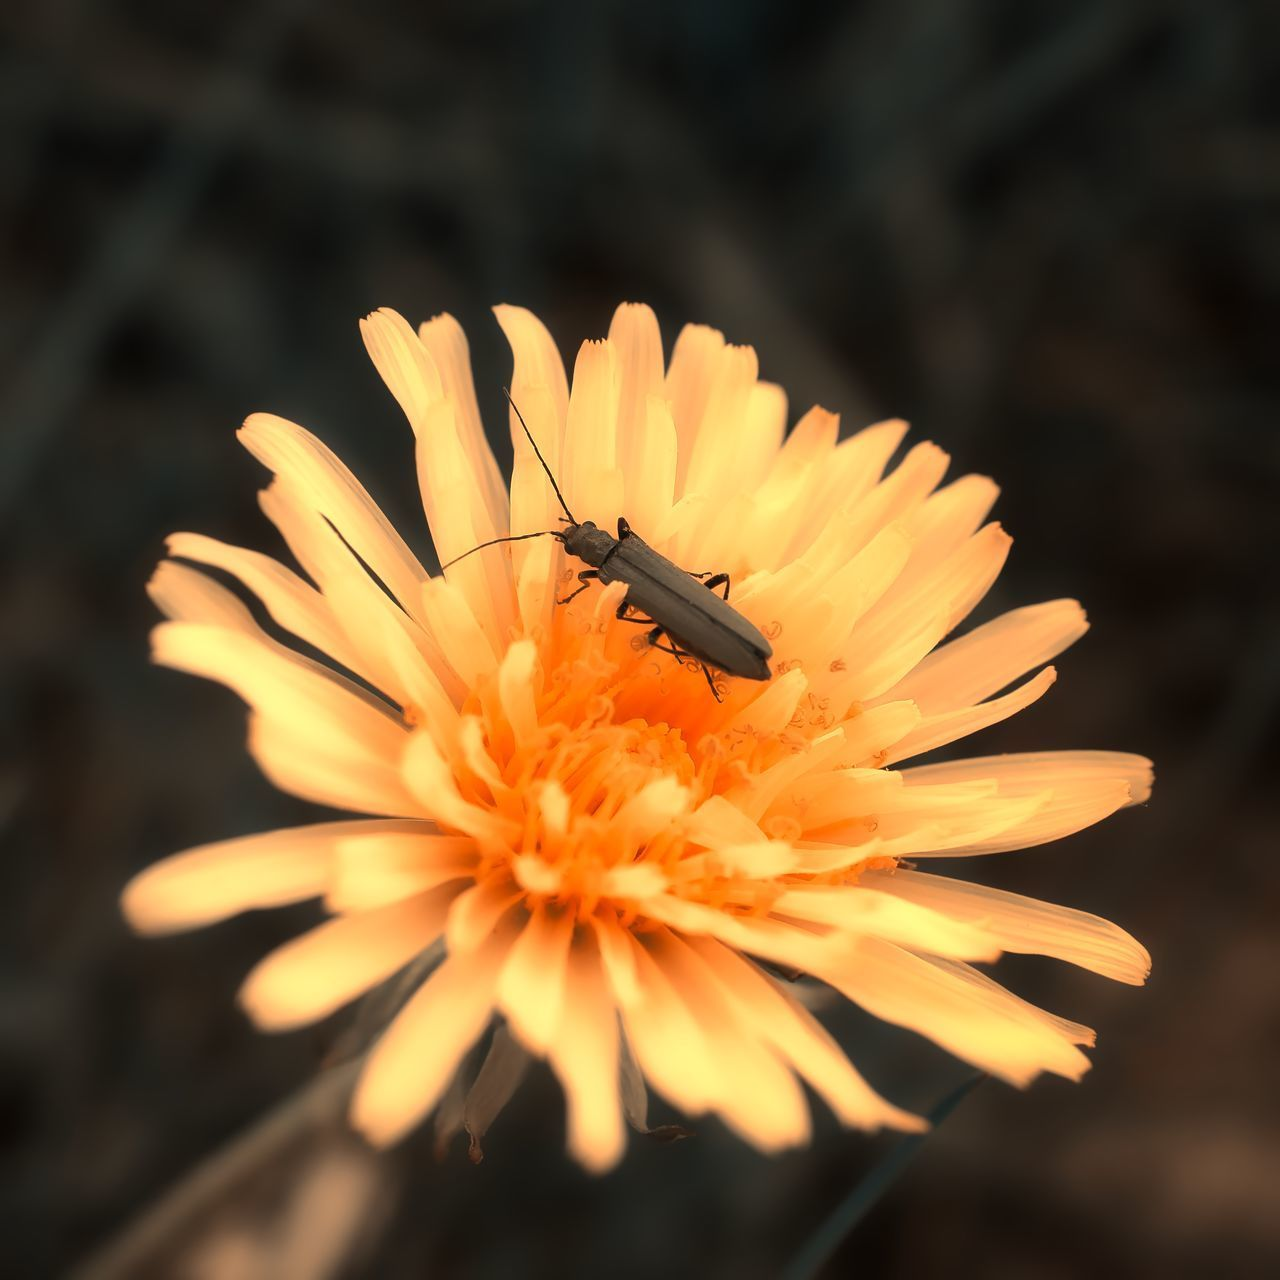 CLOSE-UP OF INSECT POLLINATING ON ORANGE FLOWER